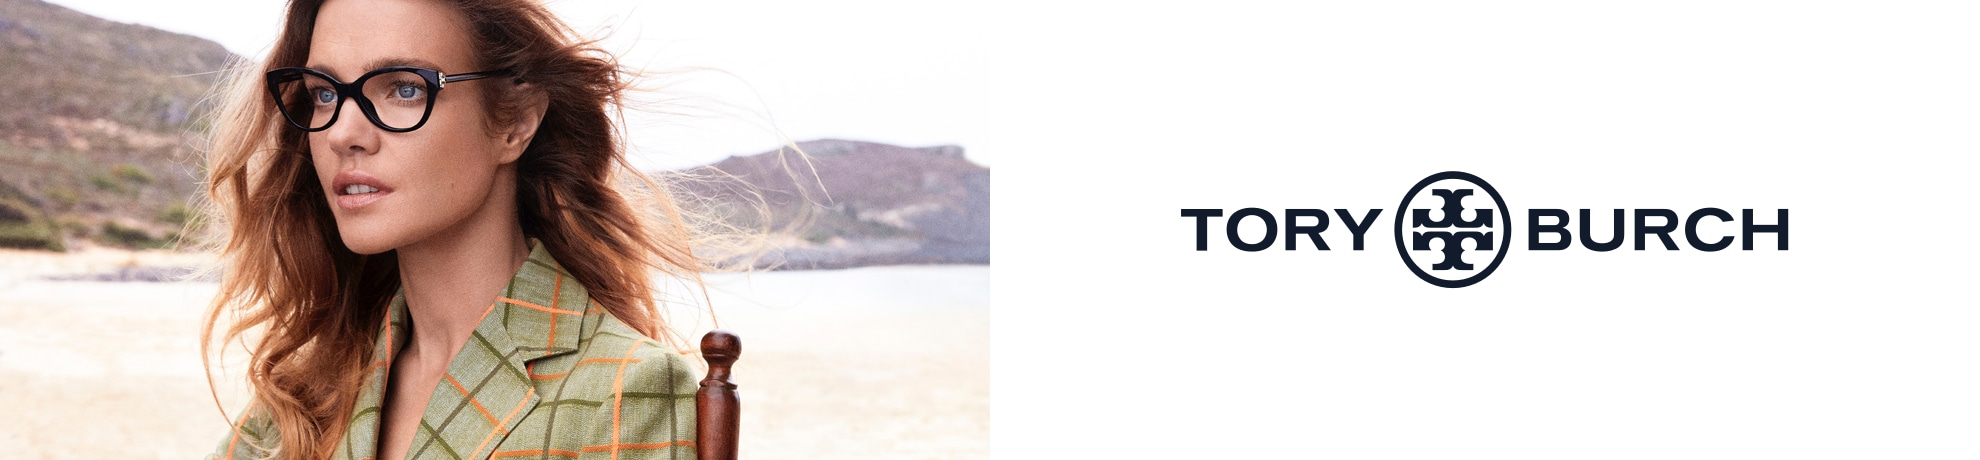 Tory Burch plp banner image